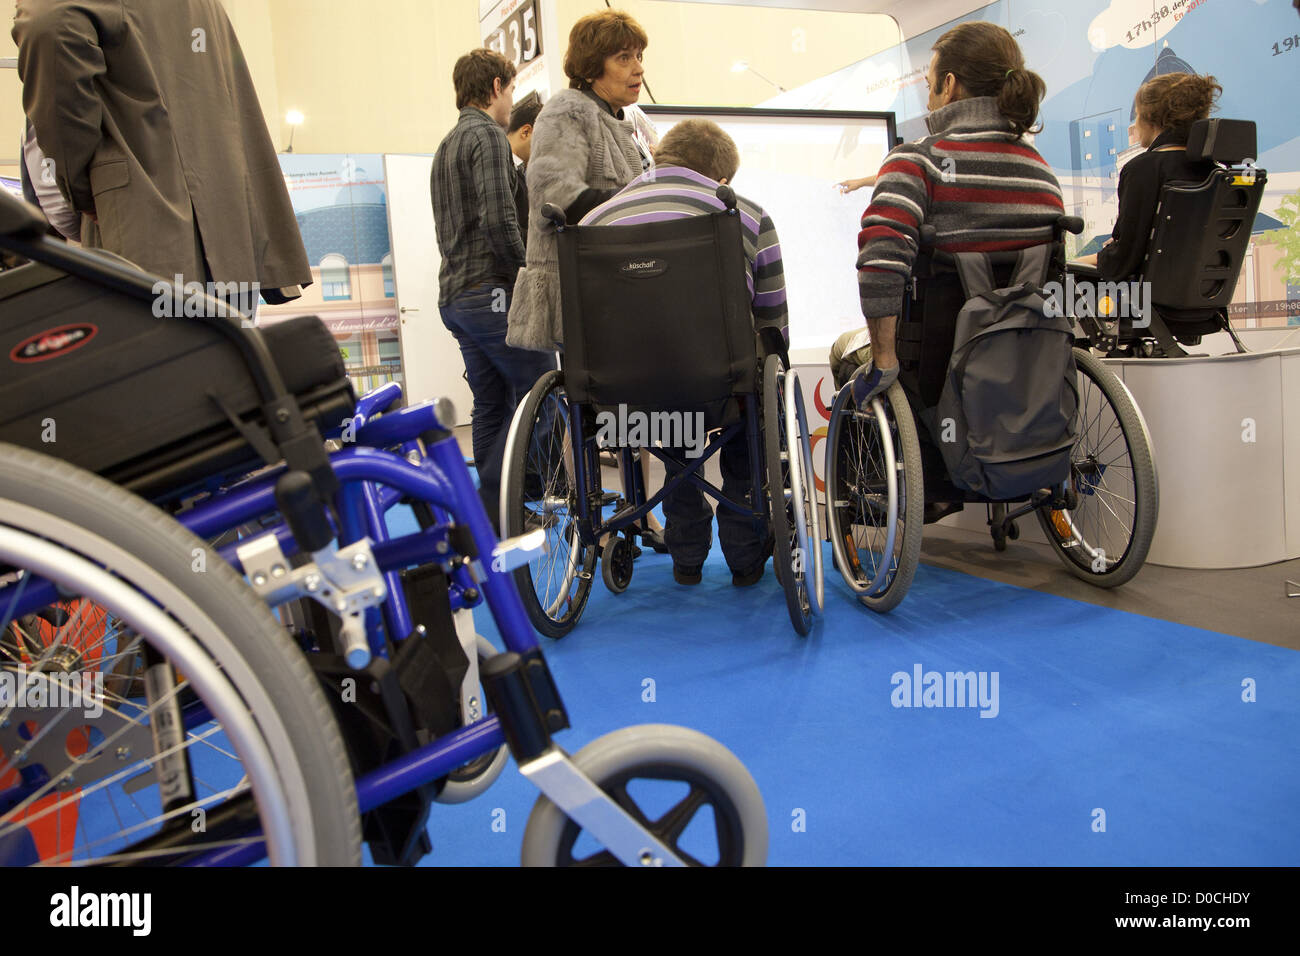 STAND FOR APF (ASSOCIATION FOR PARALYZED FRANCE) AMBIANCE AT MAYORS' CONGRESS PORTE DE VERSAILLES PARIS (75) - Stock Image